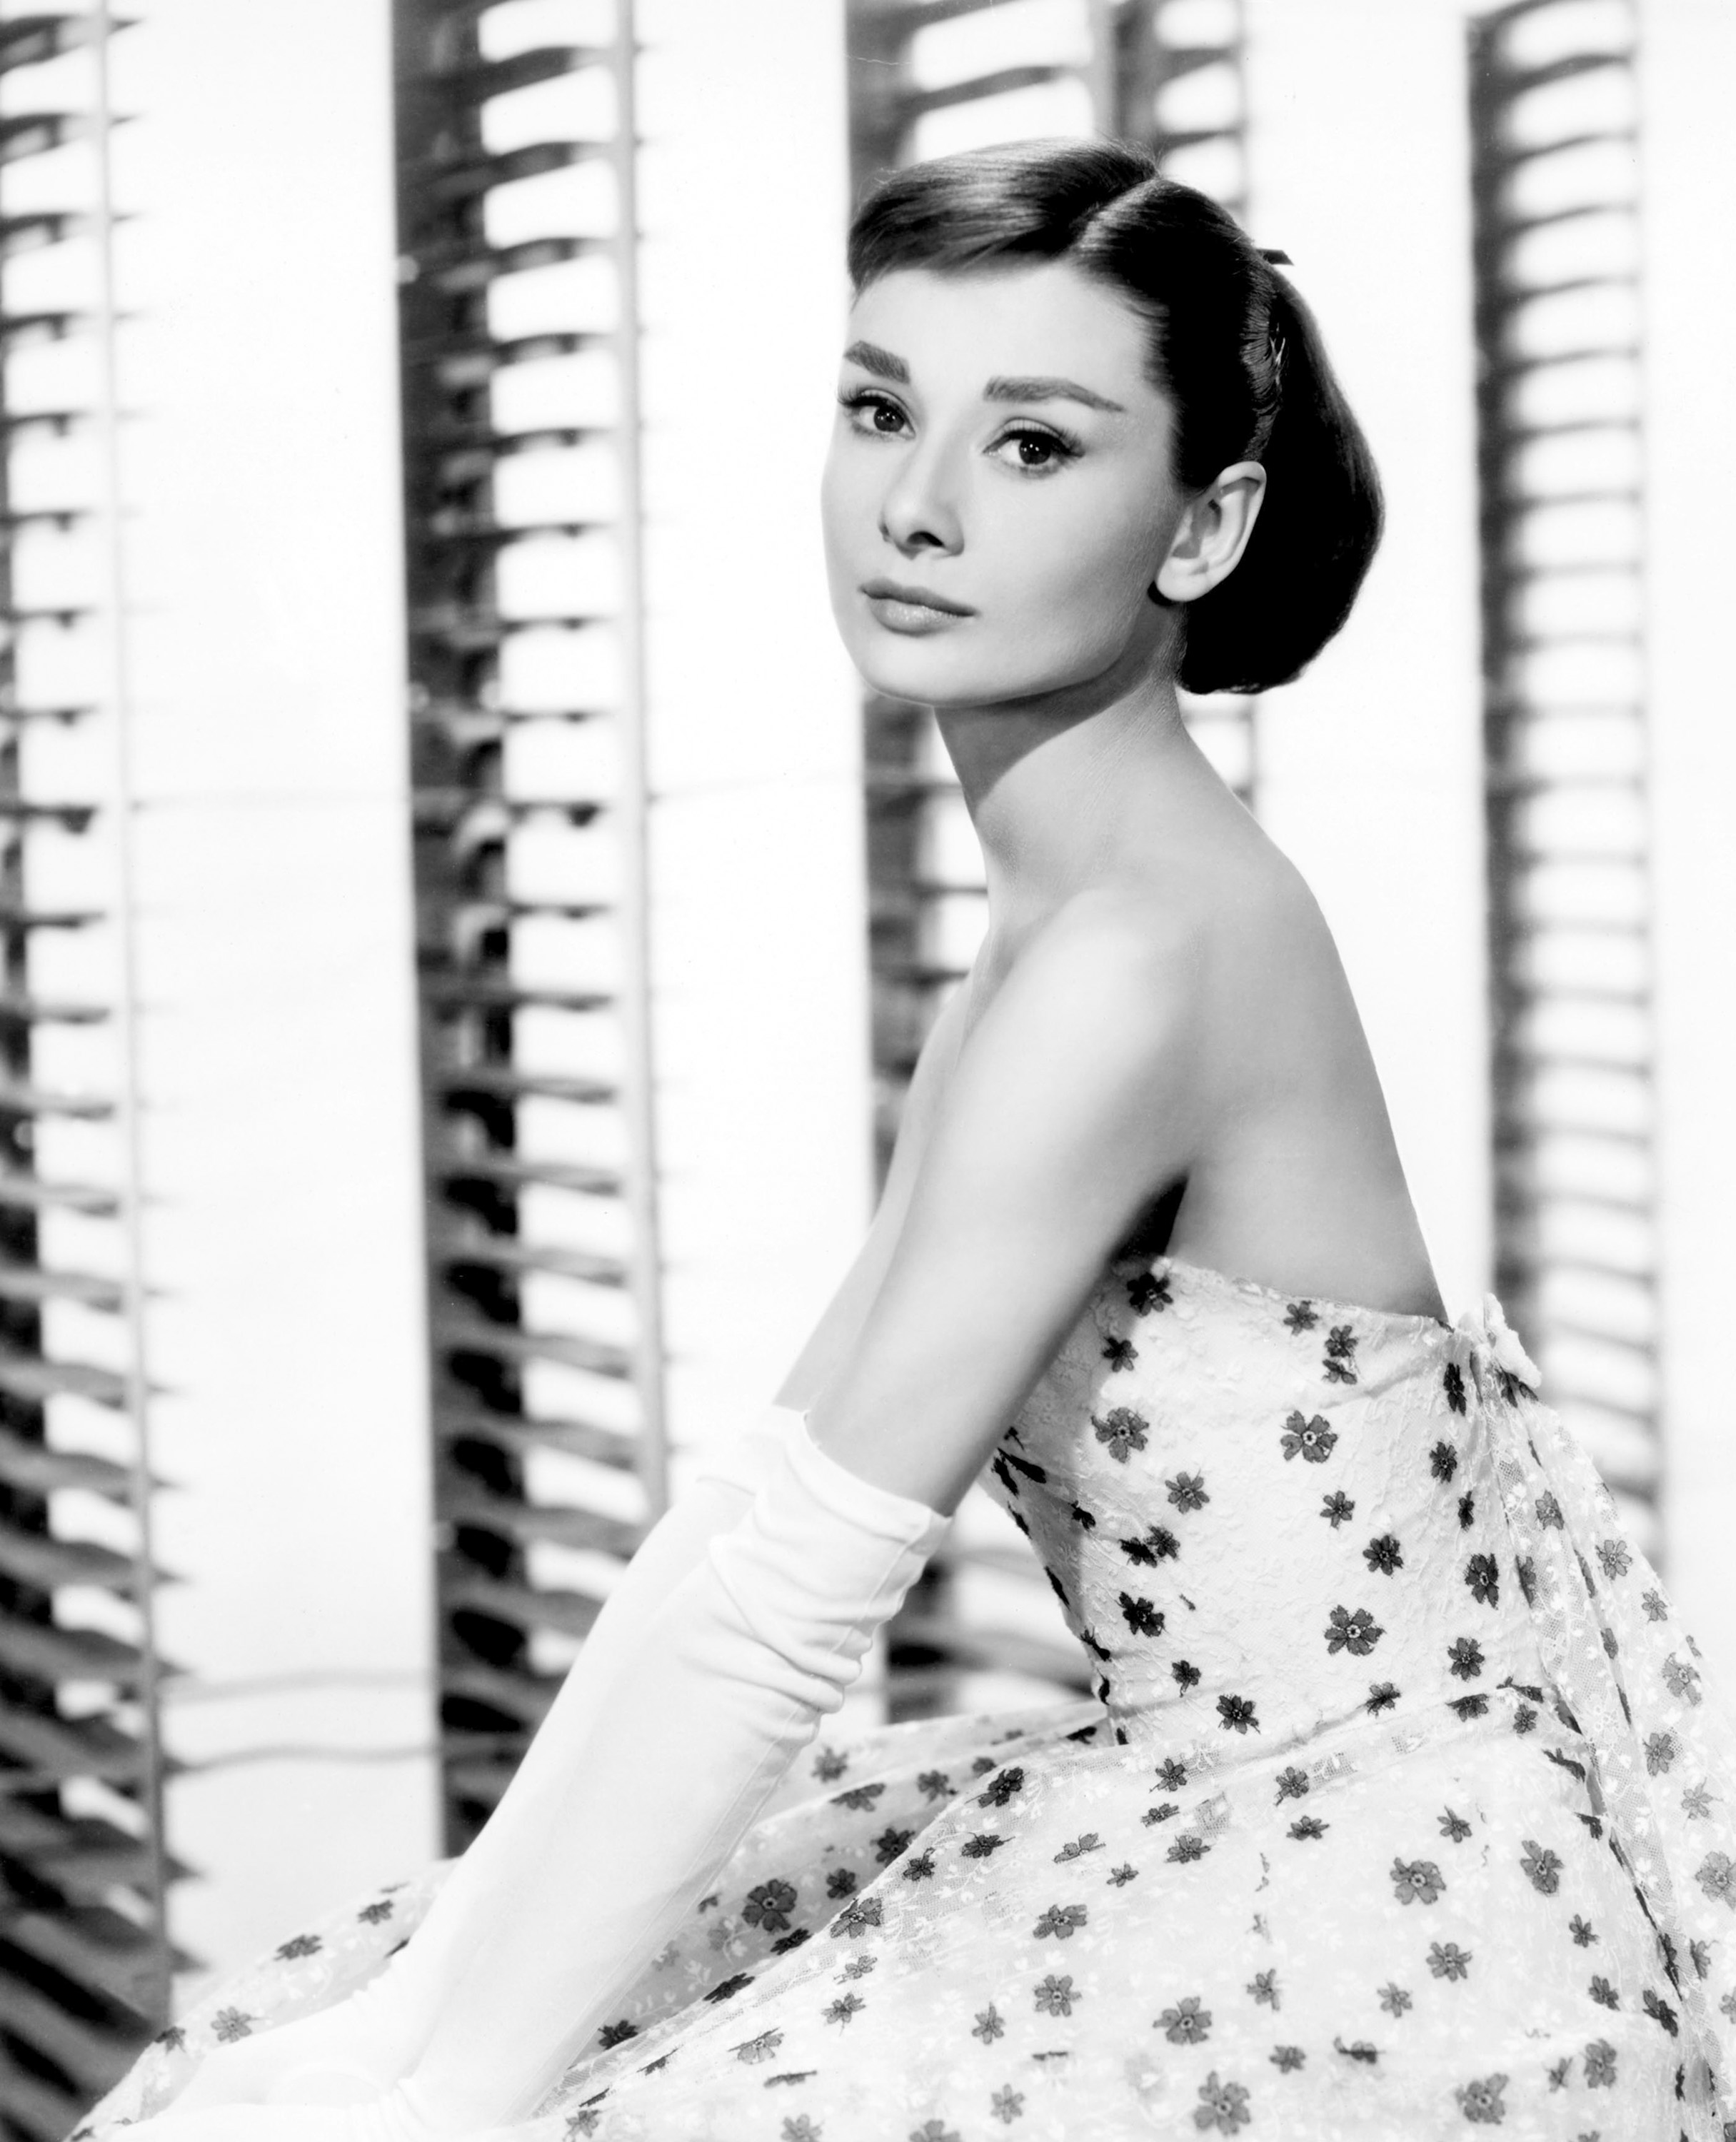 http://thefashiontag.files.wordpress.com/2012/10/audrey-hepburn-style-9.jpg